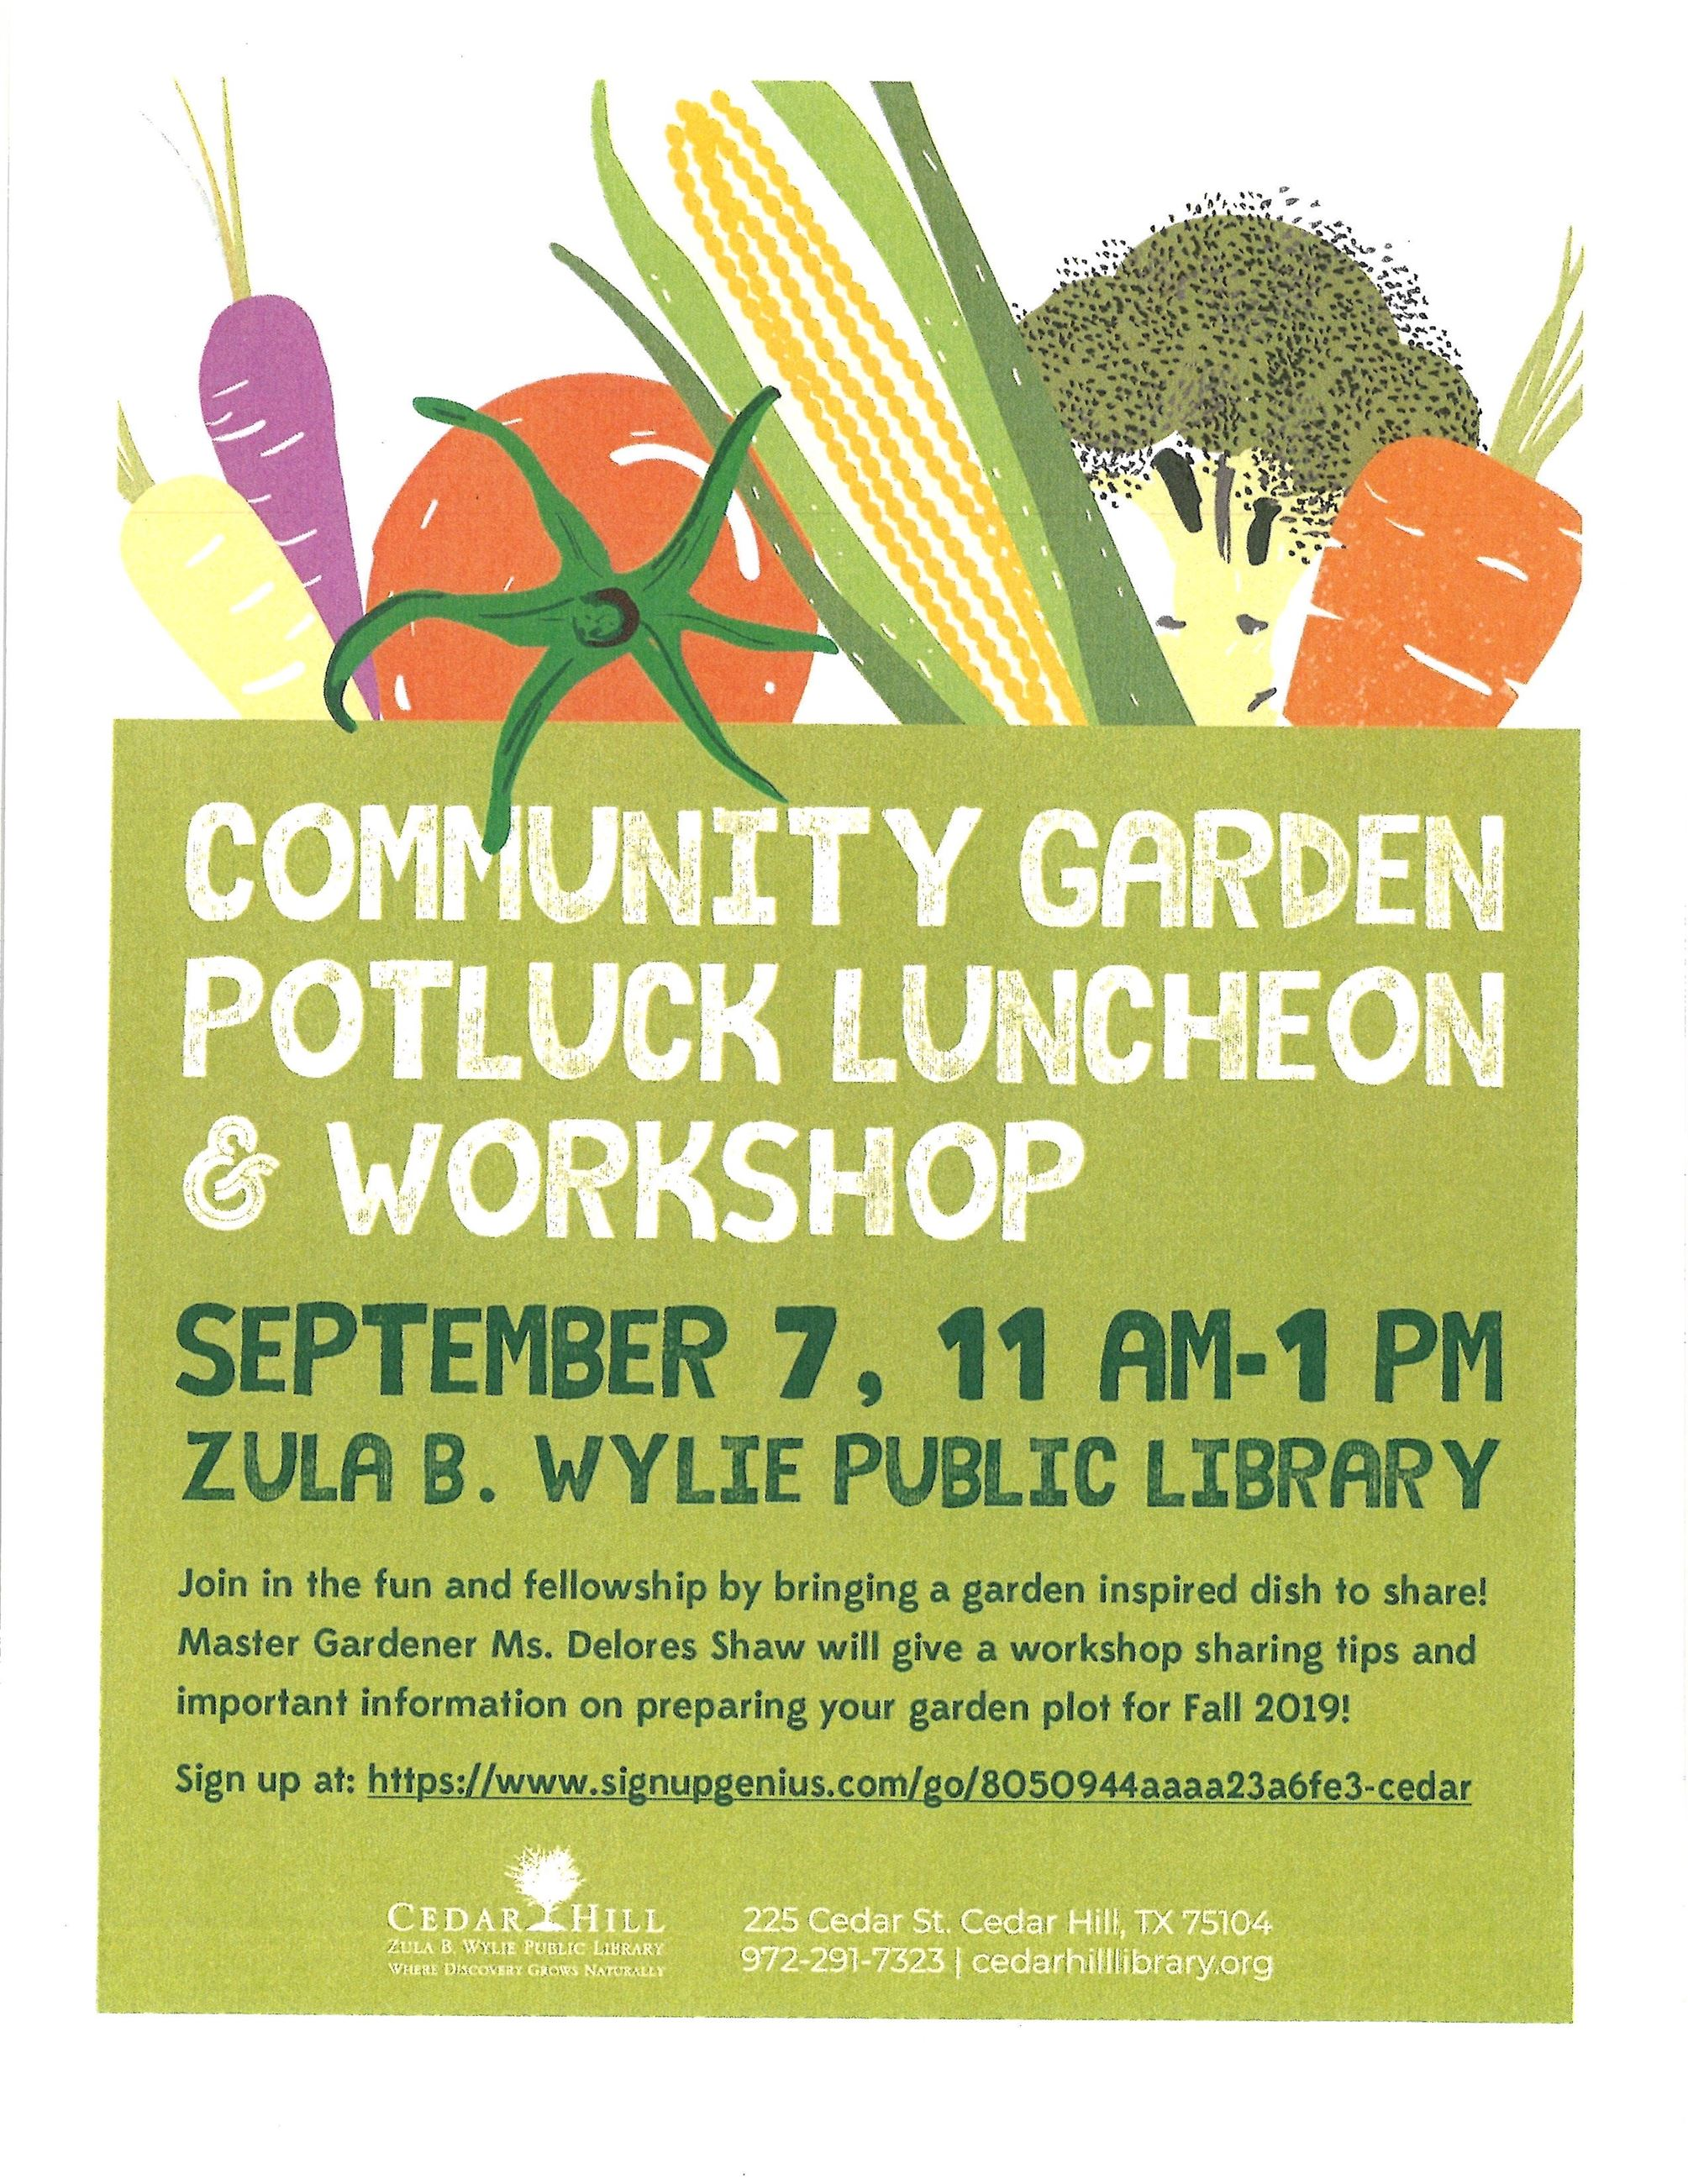 Garden Potluck Luncheon Workshop